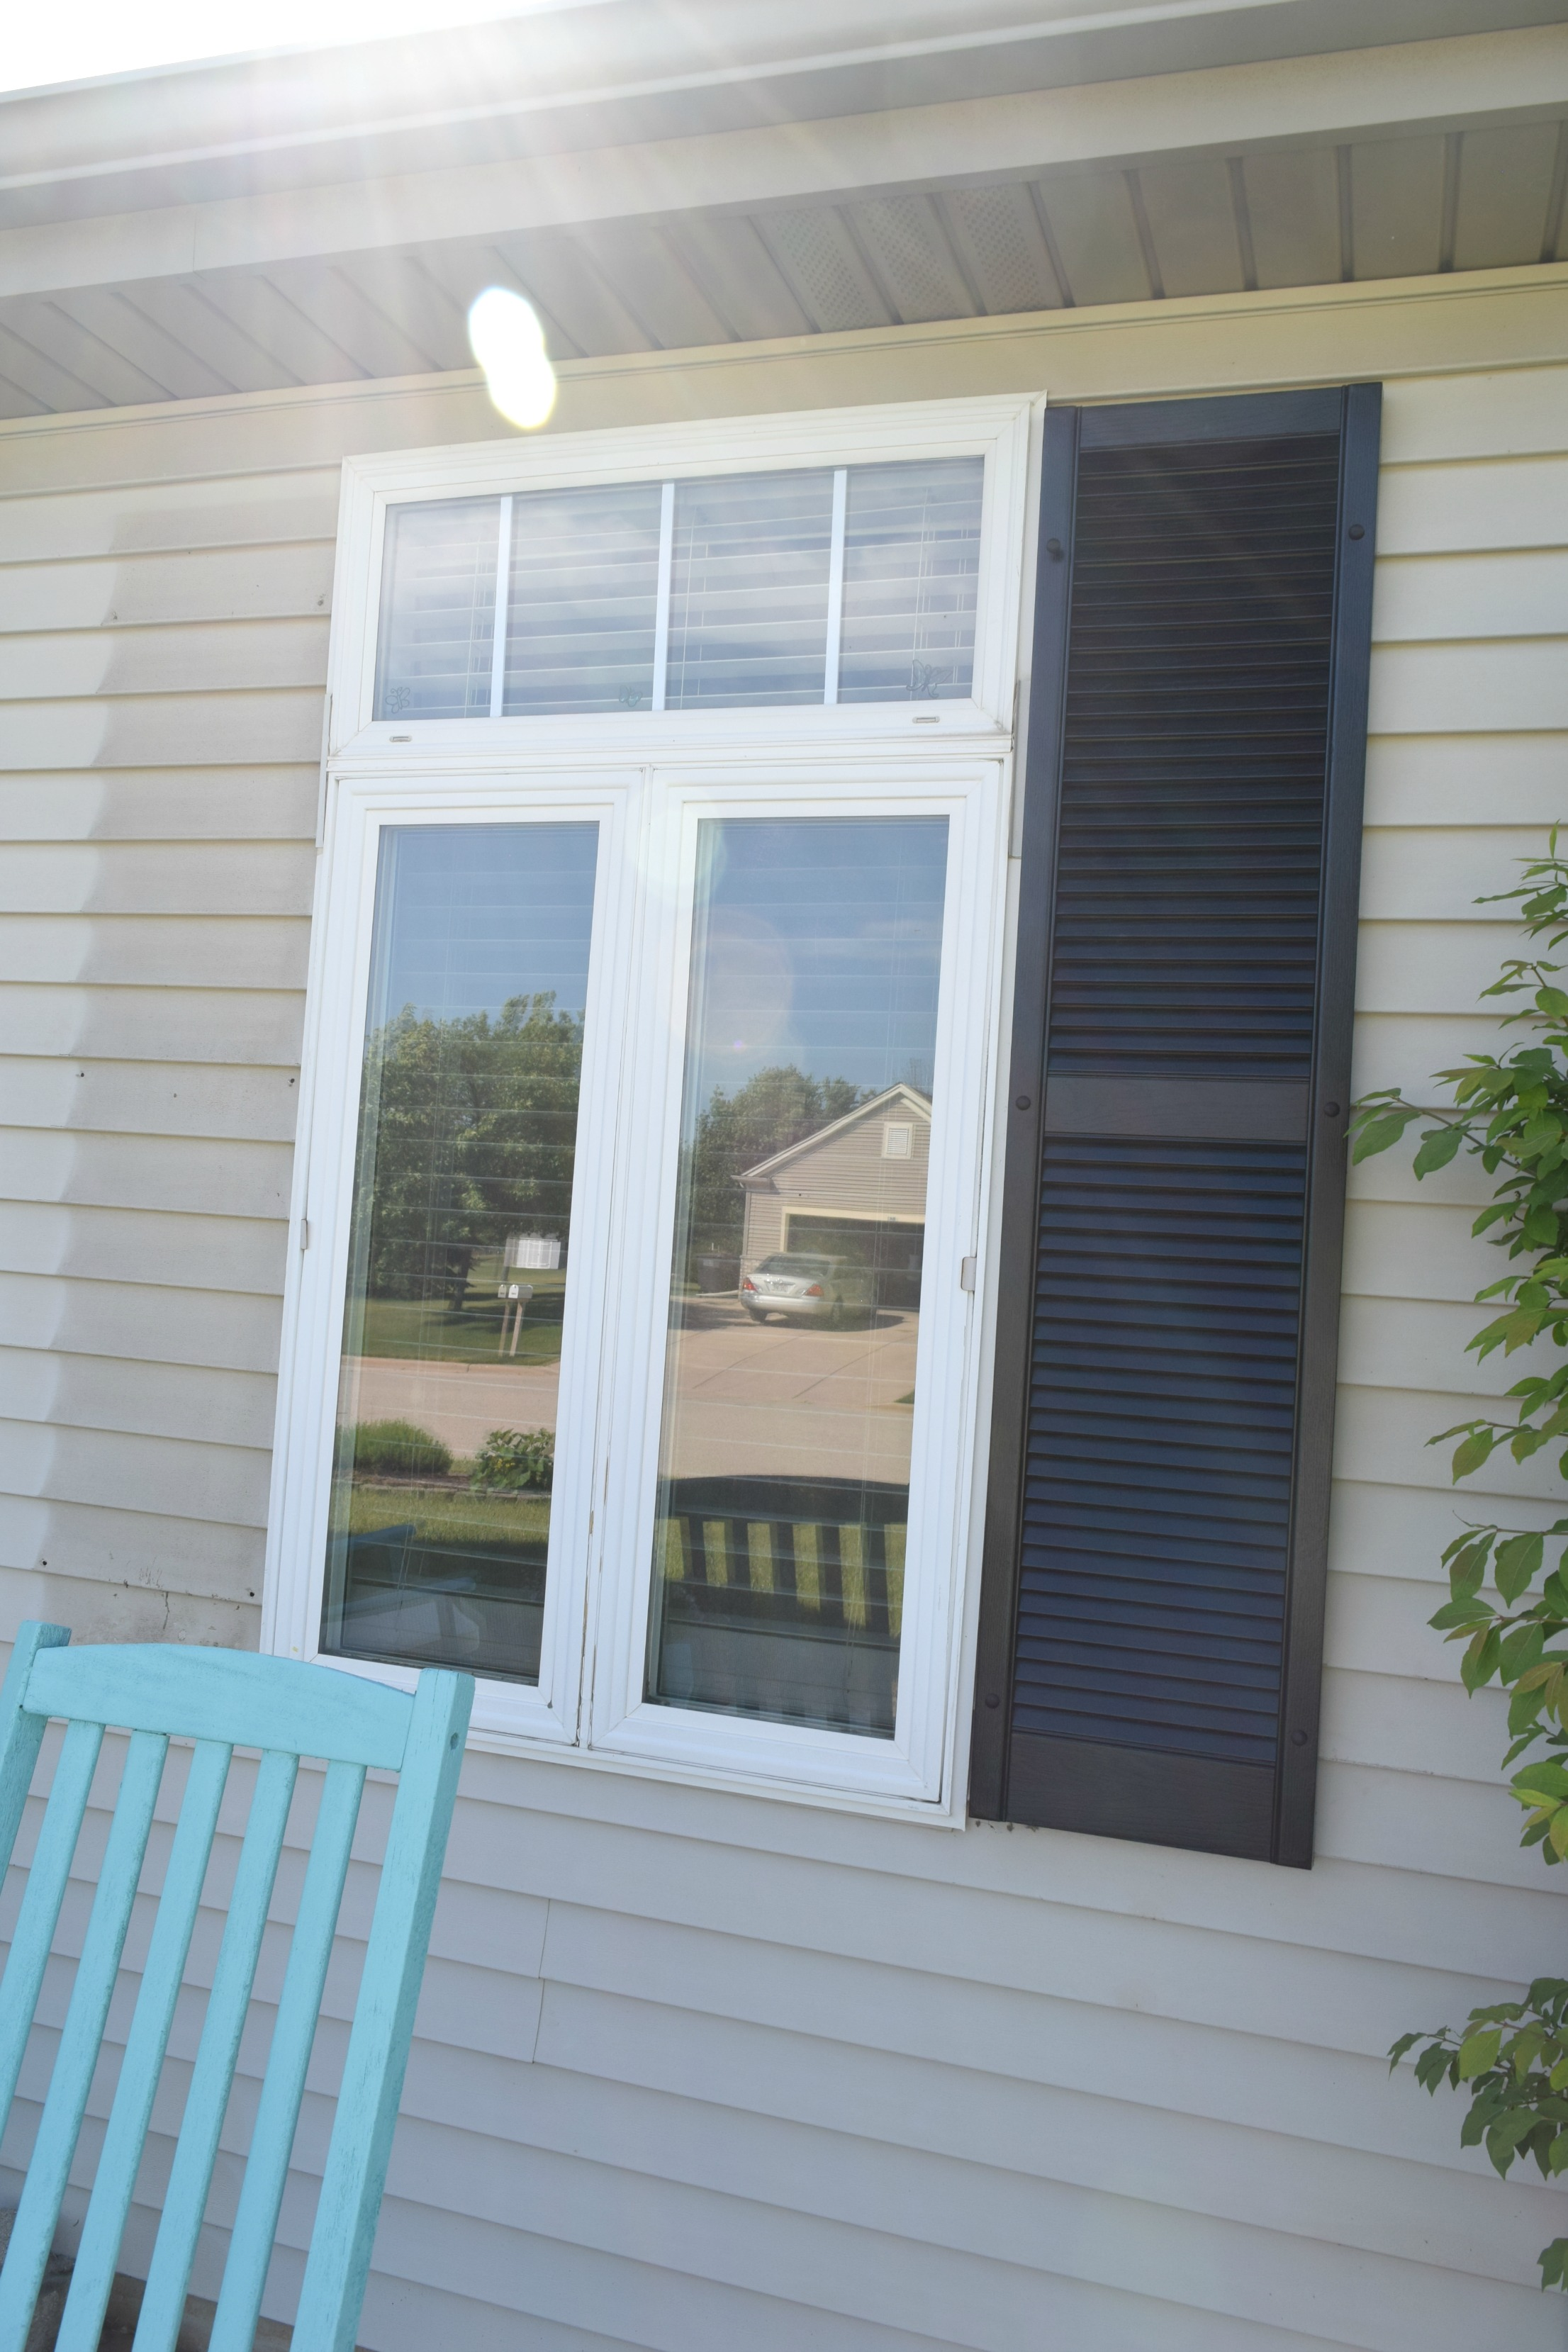 adding curb appeal how to paint shutters and front door our house now a home